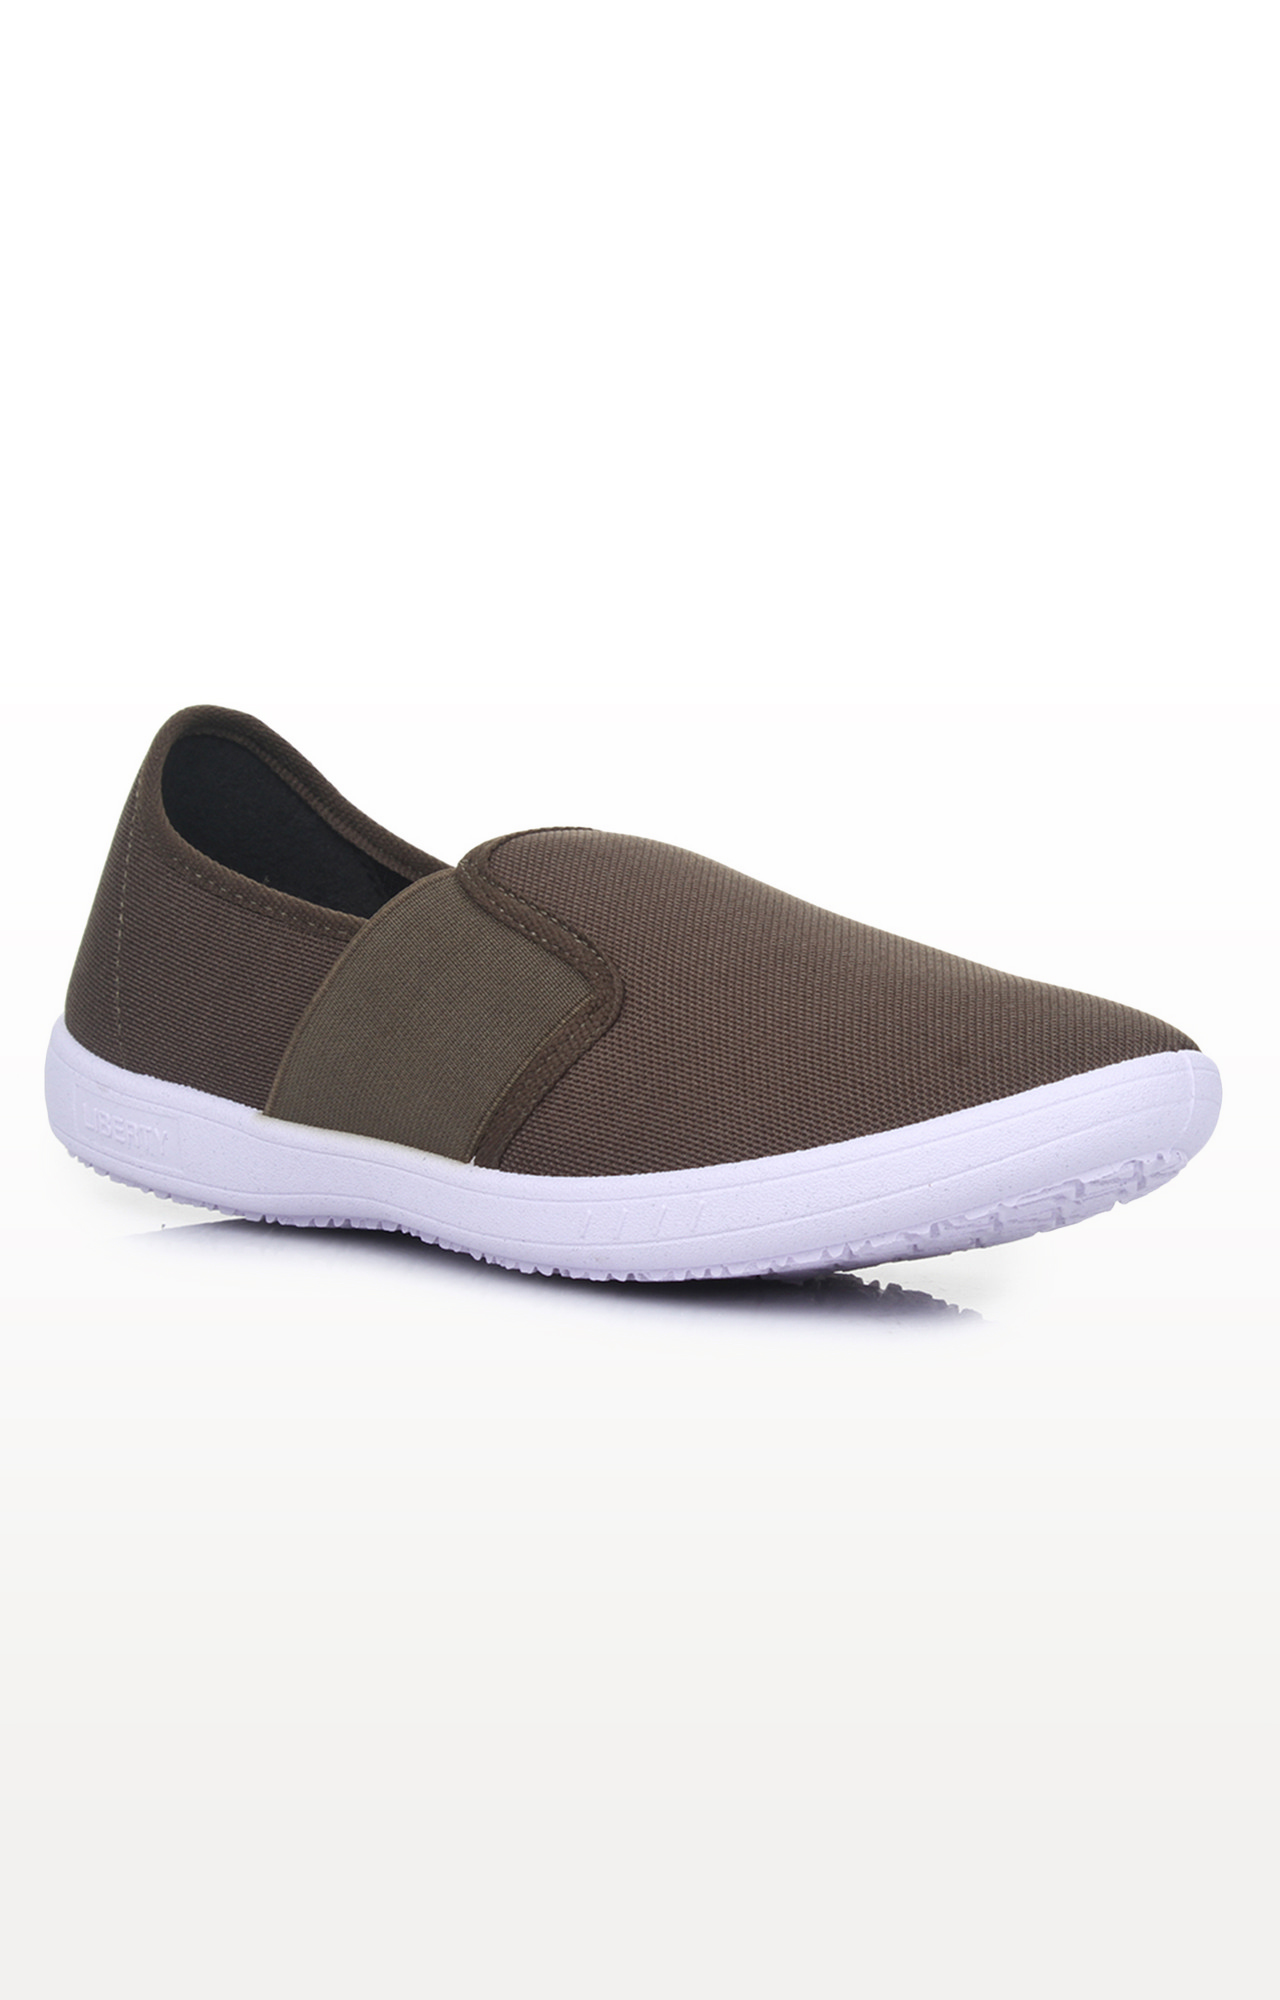 Liberty   Gliders by Liberty Olive Casual Slip-ons